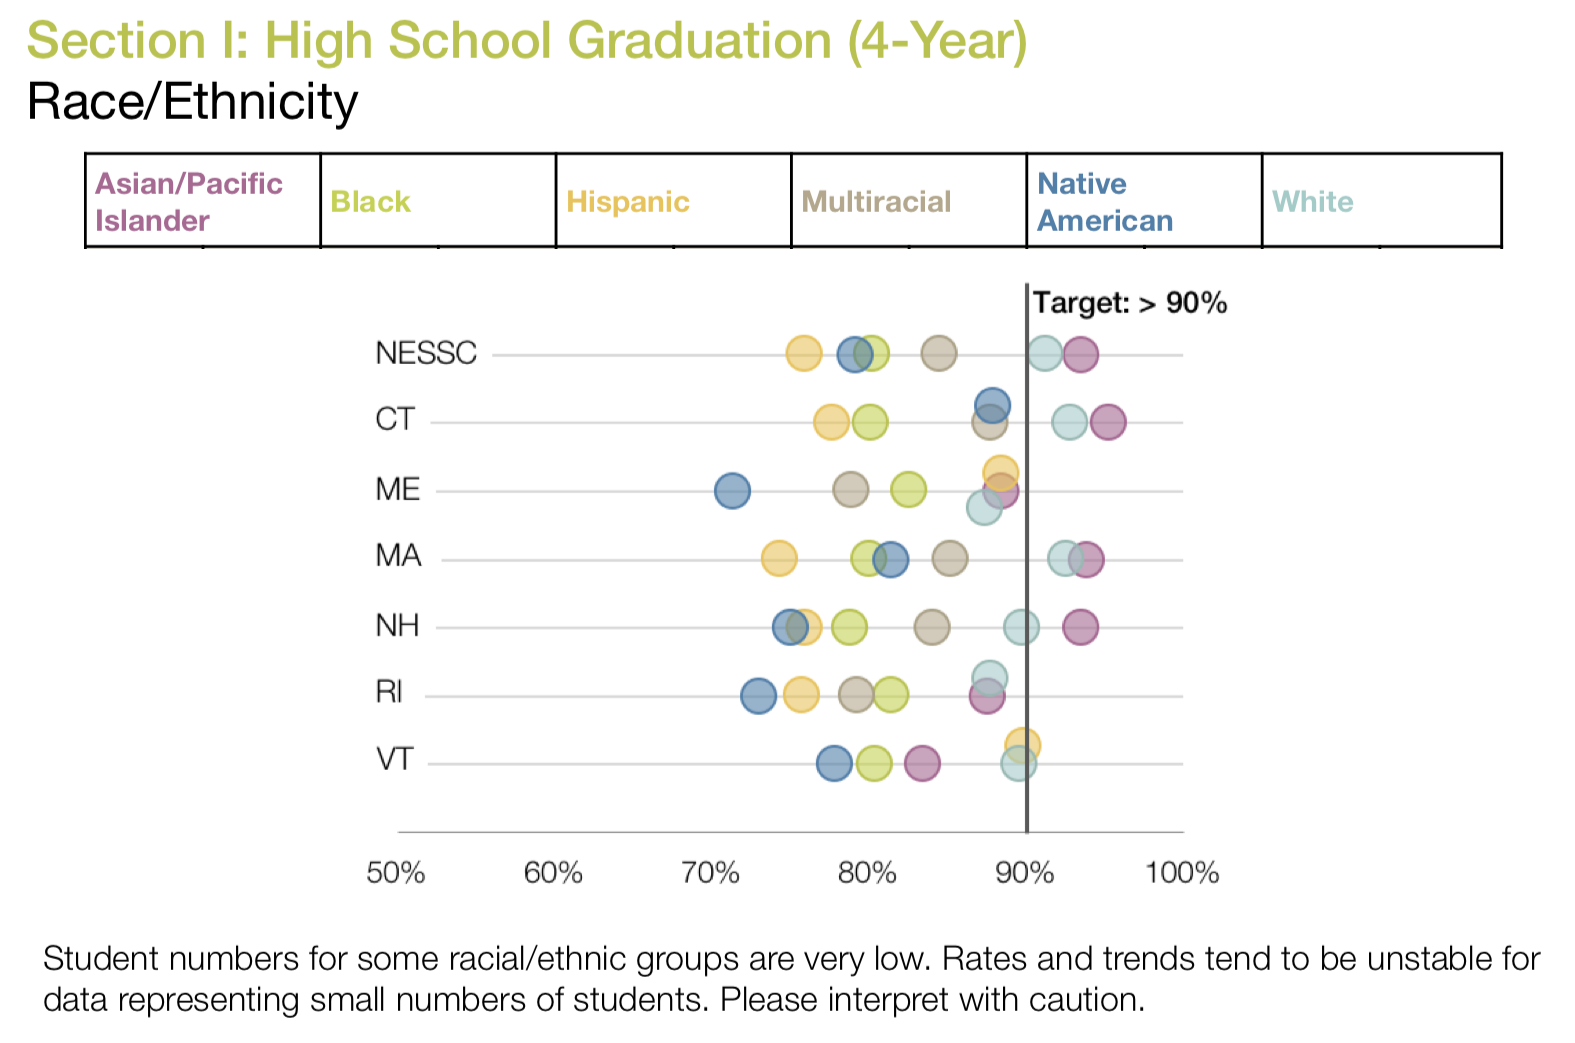 NESSC Common Data Project Annual Report : transparent, comparable data about high school and college outcomes from the six New England states. Great fodder for evidence-based action planning.